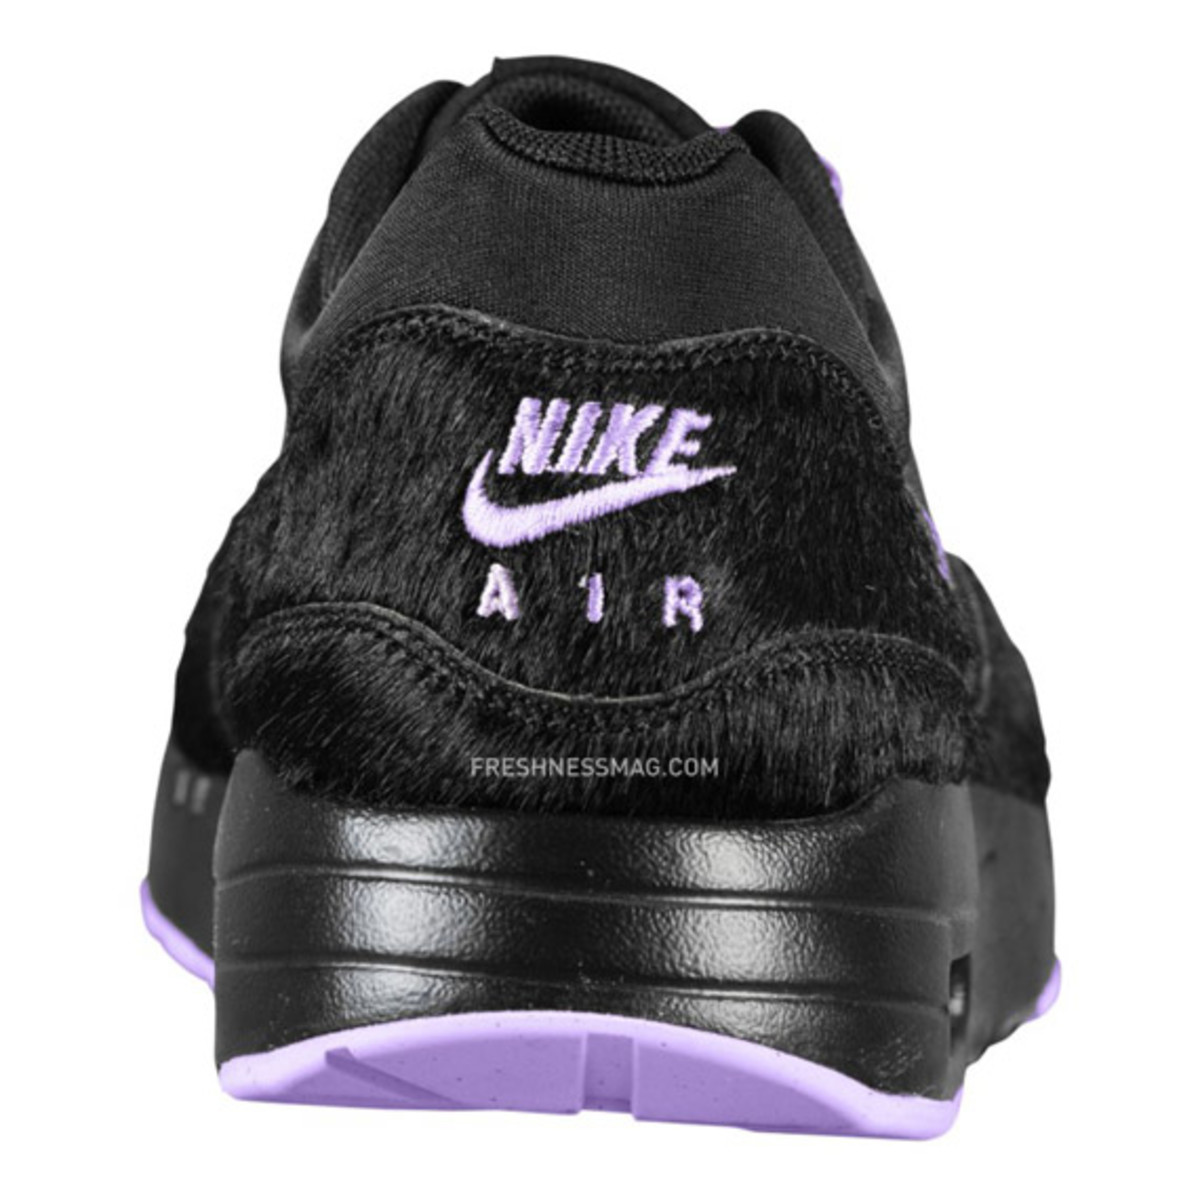 nike-air-maxim-1-air-attack-liliac-05